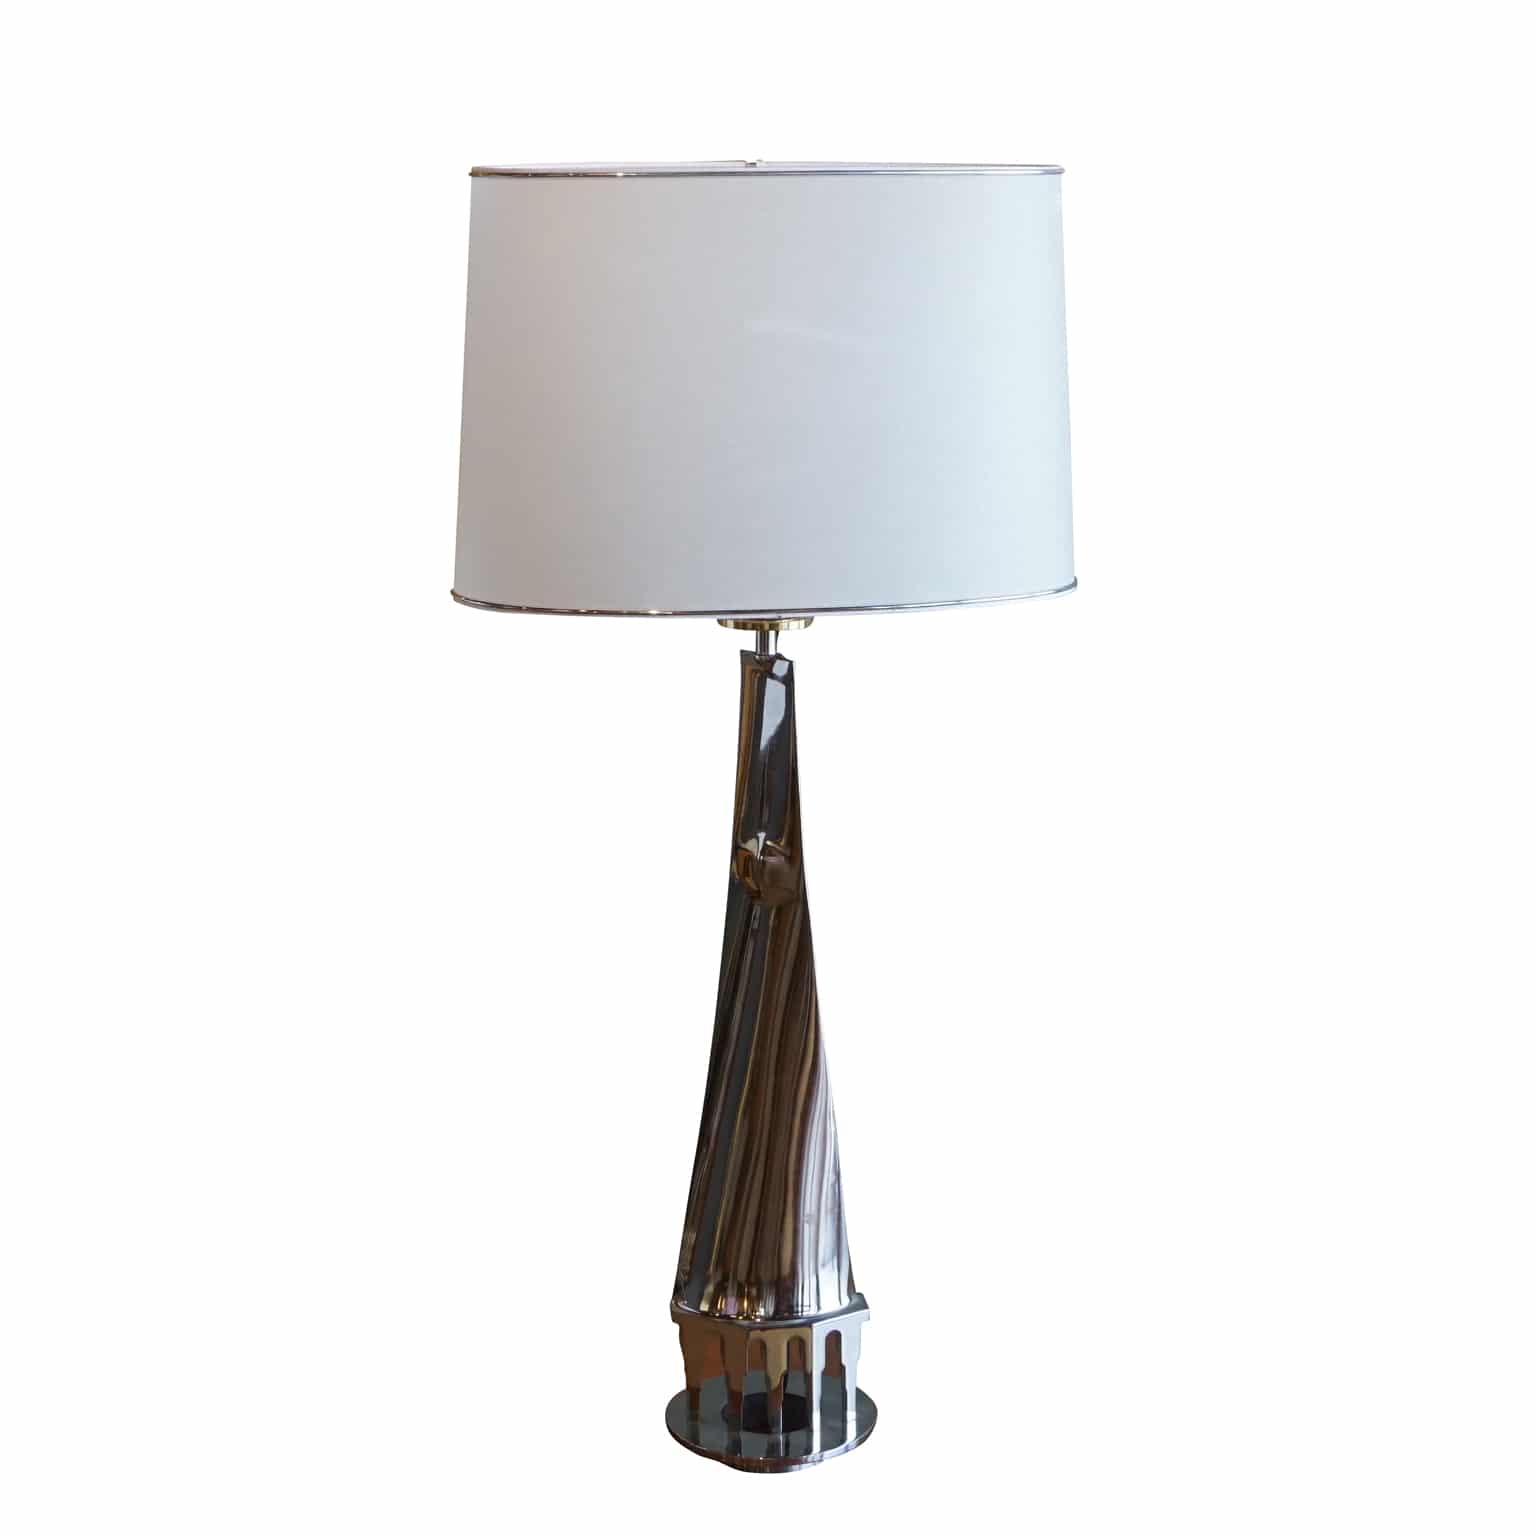 Florentine Table Lamp by Banci Firenze